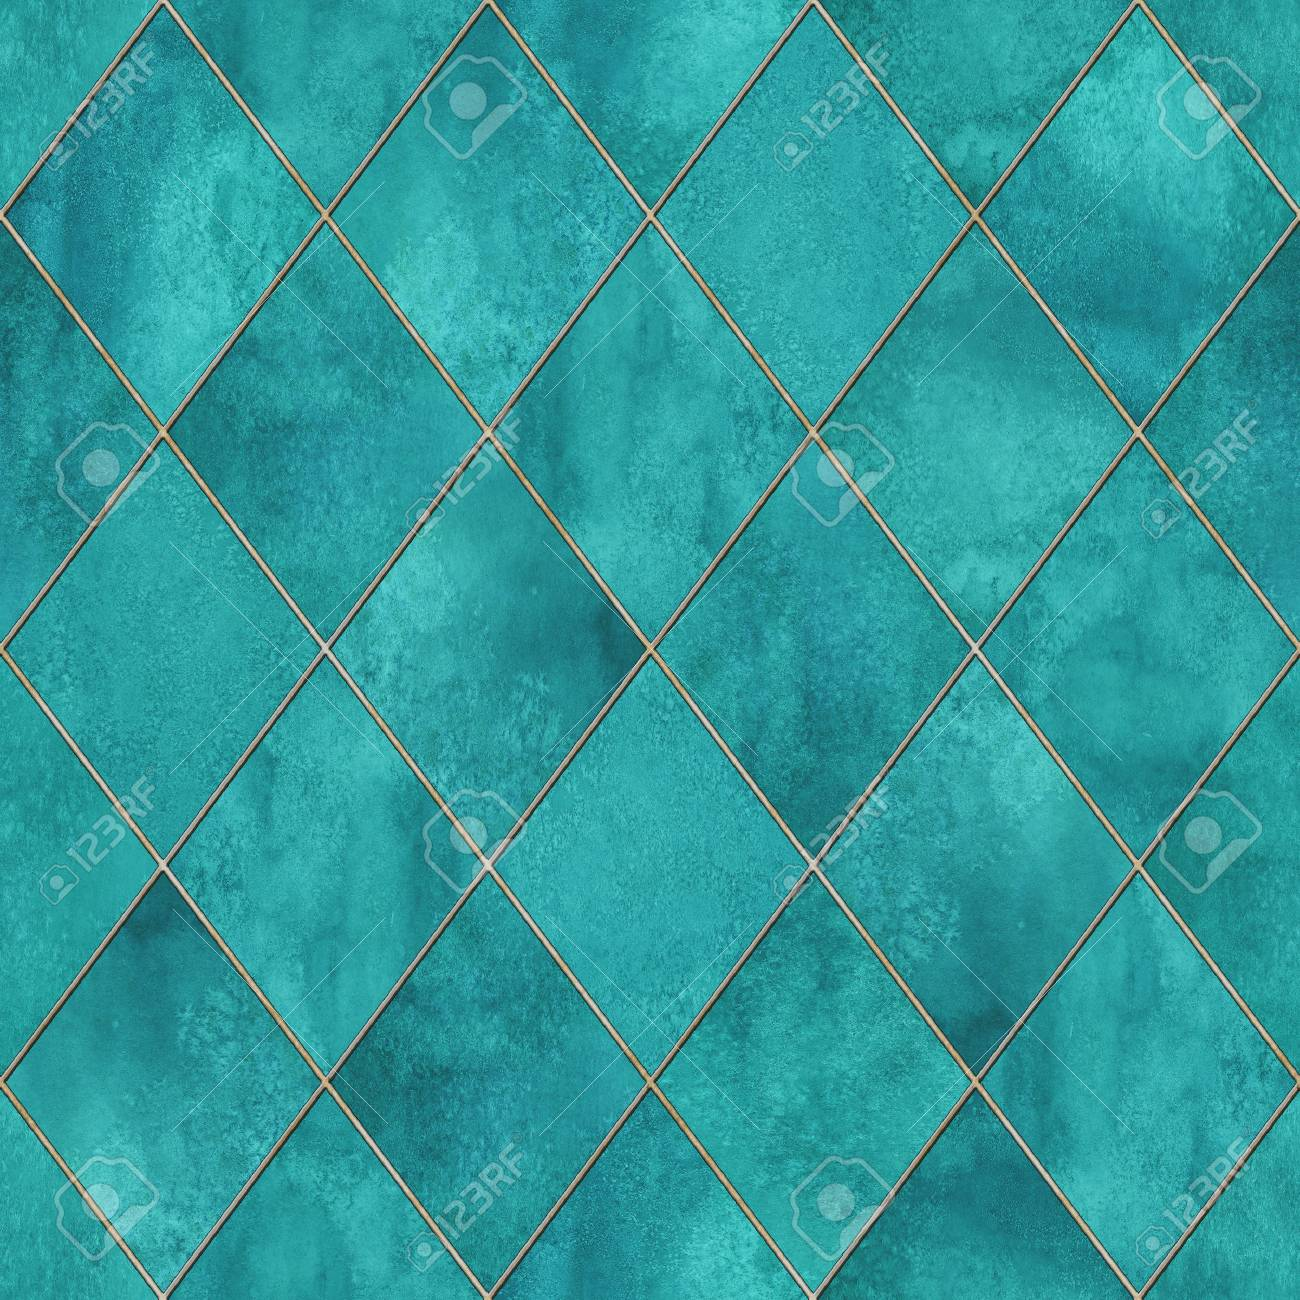 Watercolor Argyle Abstract Geometric Plaid Seamless Pattern With Stock Photo Picture And Royalty Free Image Image 106220829